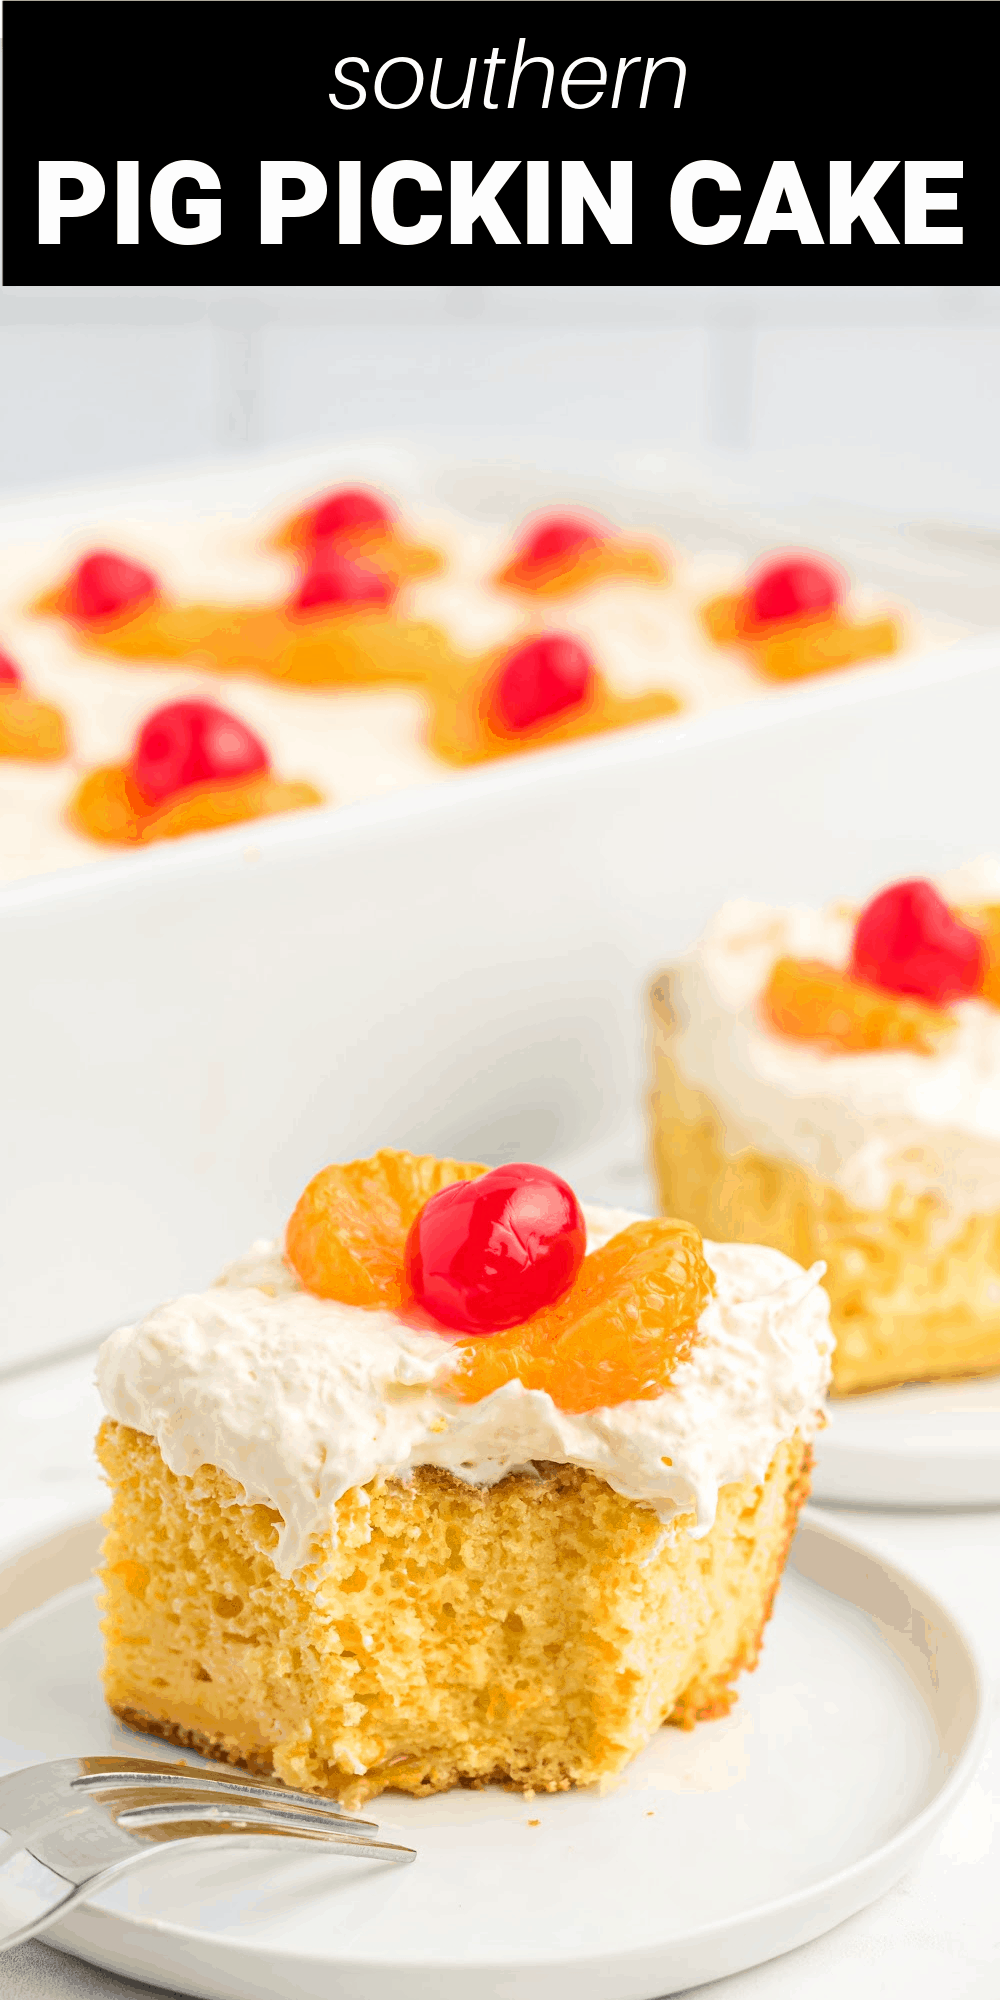 Pig Pickin Cake is a classic moist and delicious mandarin orange cake that's topped with a whipped cream and crushed pineapple frosting making it a light and refreshing dessert that's perfect for summer barbeques, family reunions, and the Fourth of July.